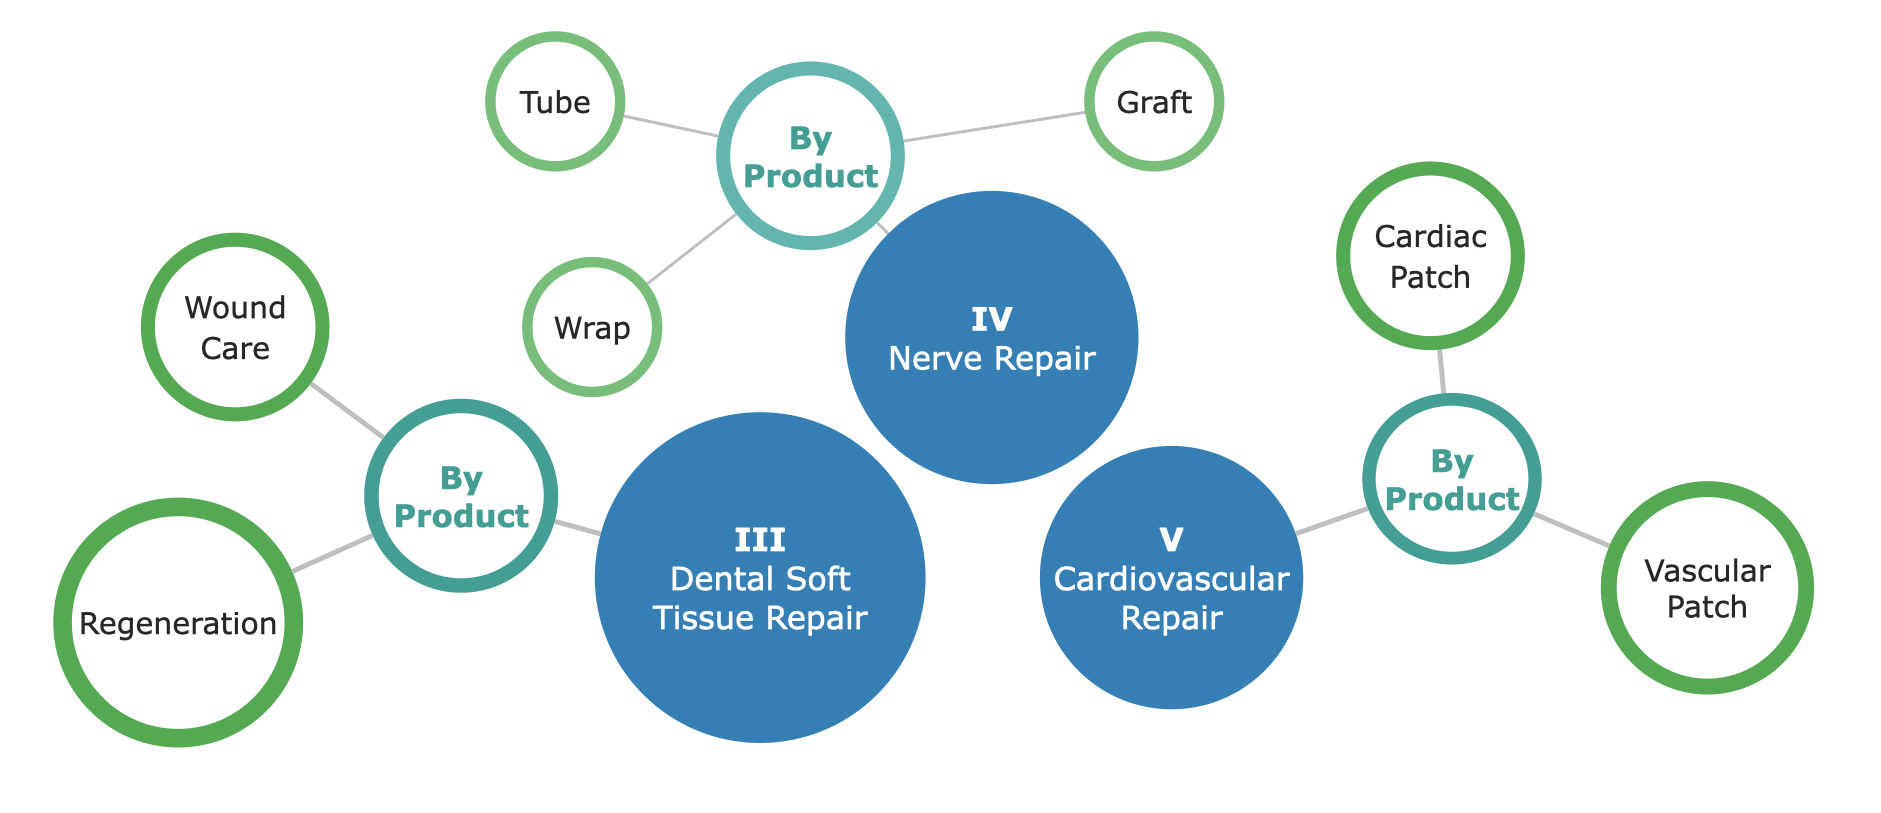 Soft Tissue Repair Market Segmentation, part 2